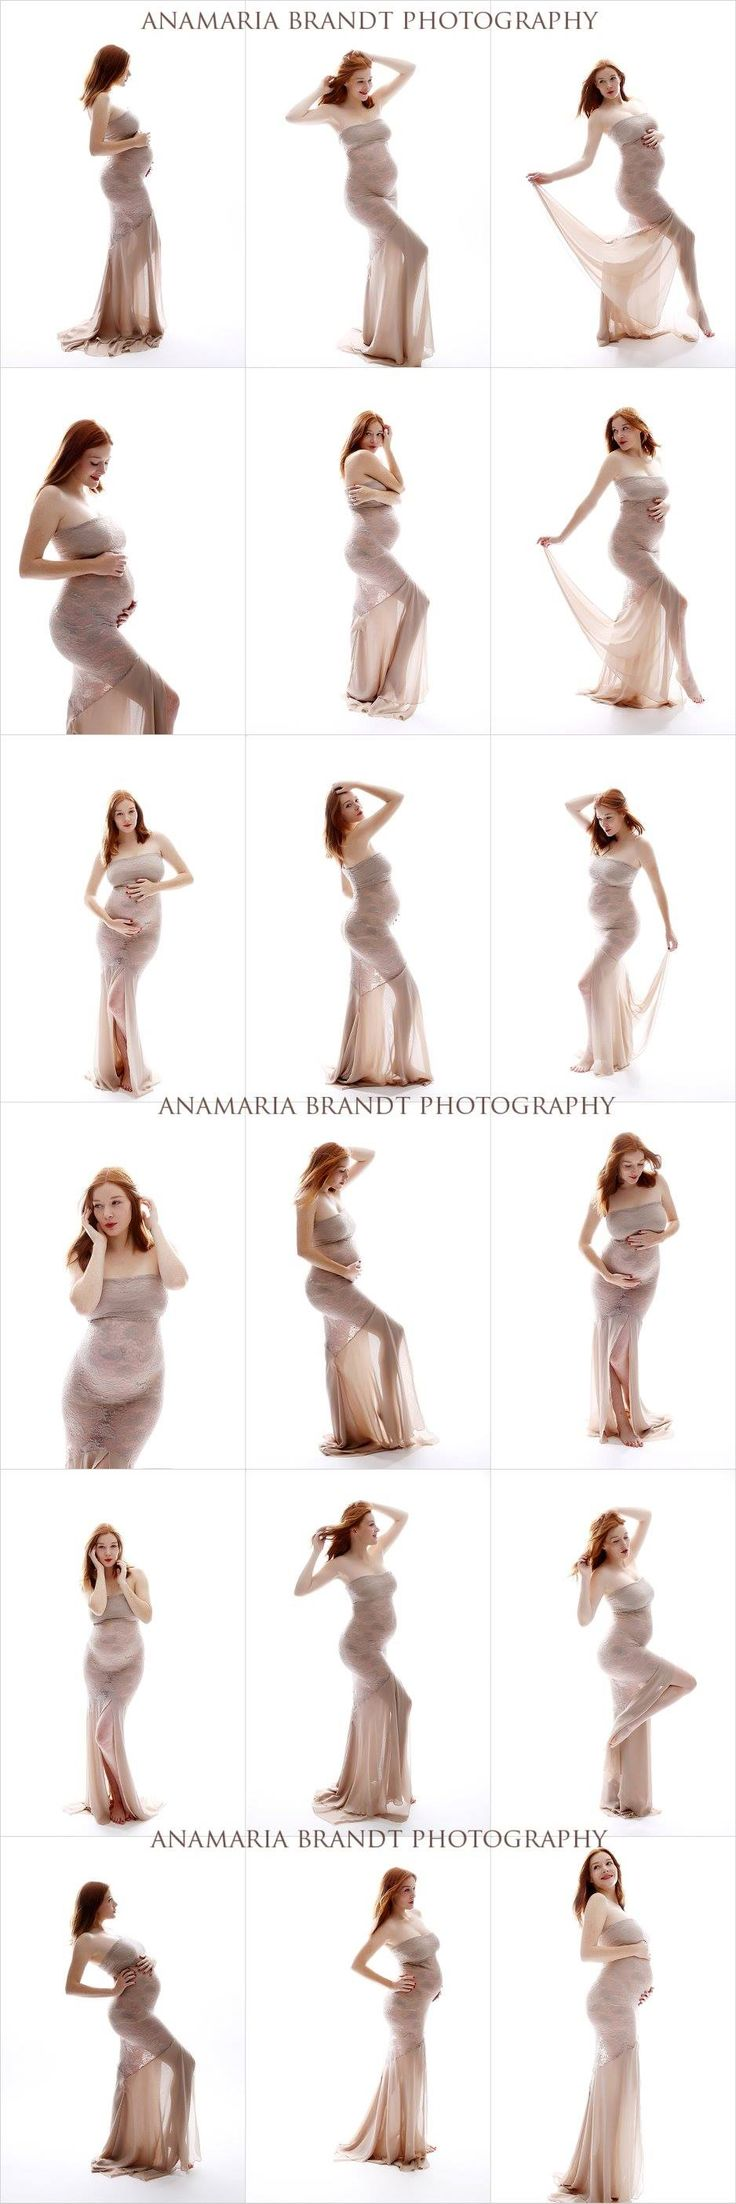 anamaria brant photography maternity poses http://www.facebook.com/TheTAoPaNPage/photos/a.192694100768849.39482.191670694204523/807253182646268/?type=1&theater